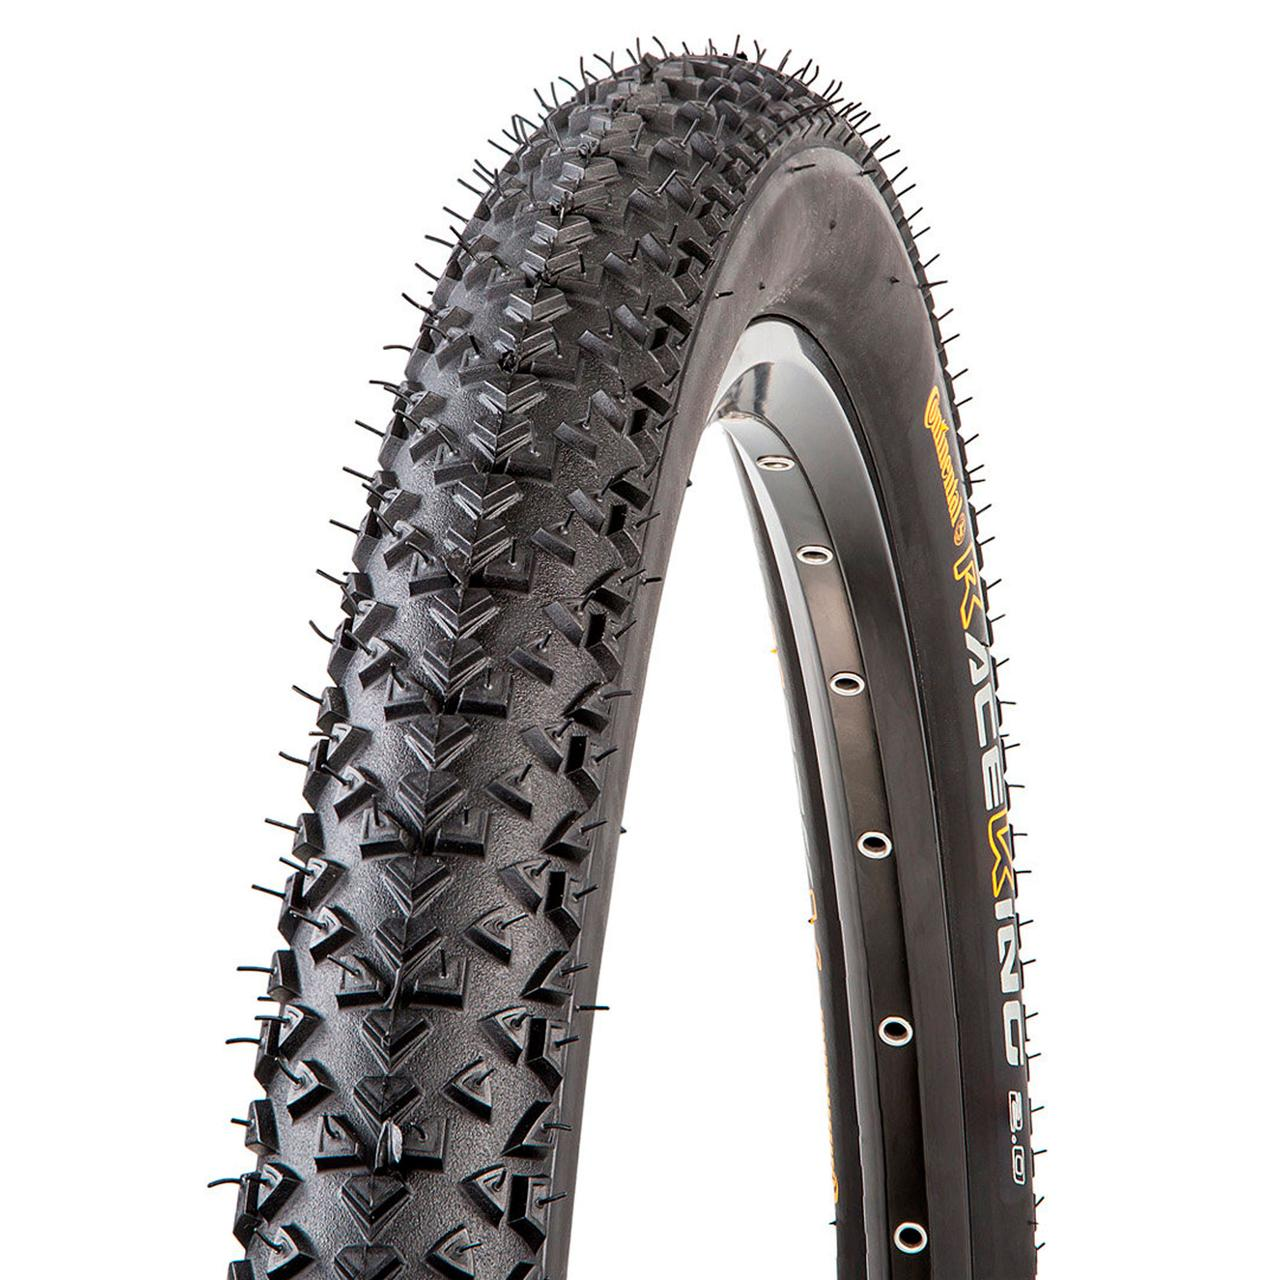 "Покрышка Continental Race King 2.0, 27.5""x2.00, 50-584, Foldable, PureGrip, ShieldWall System, Skin, 630гр."